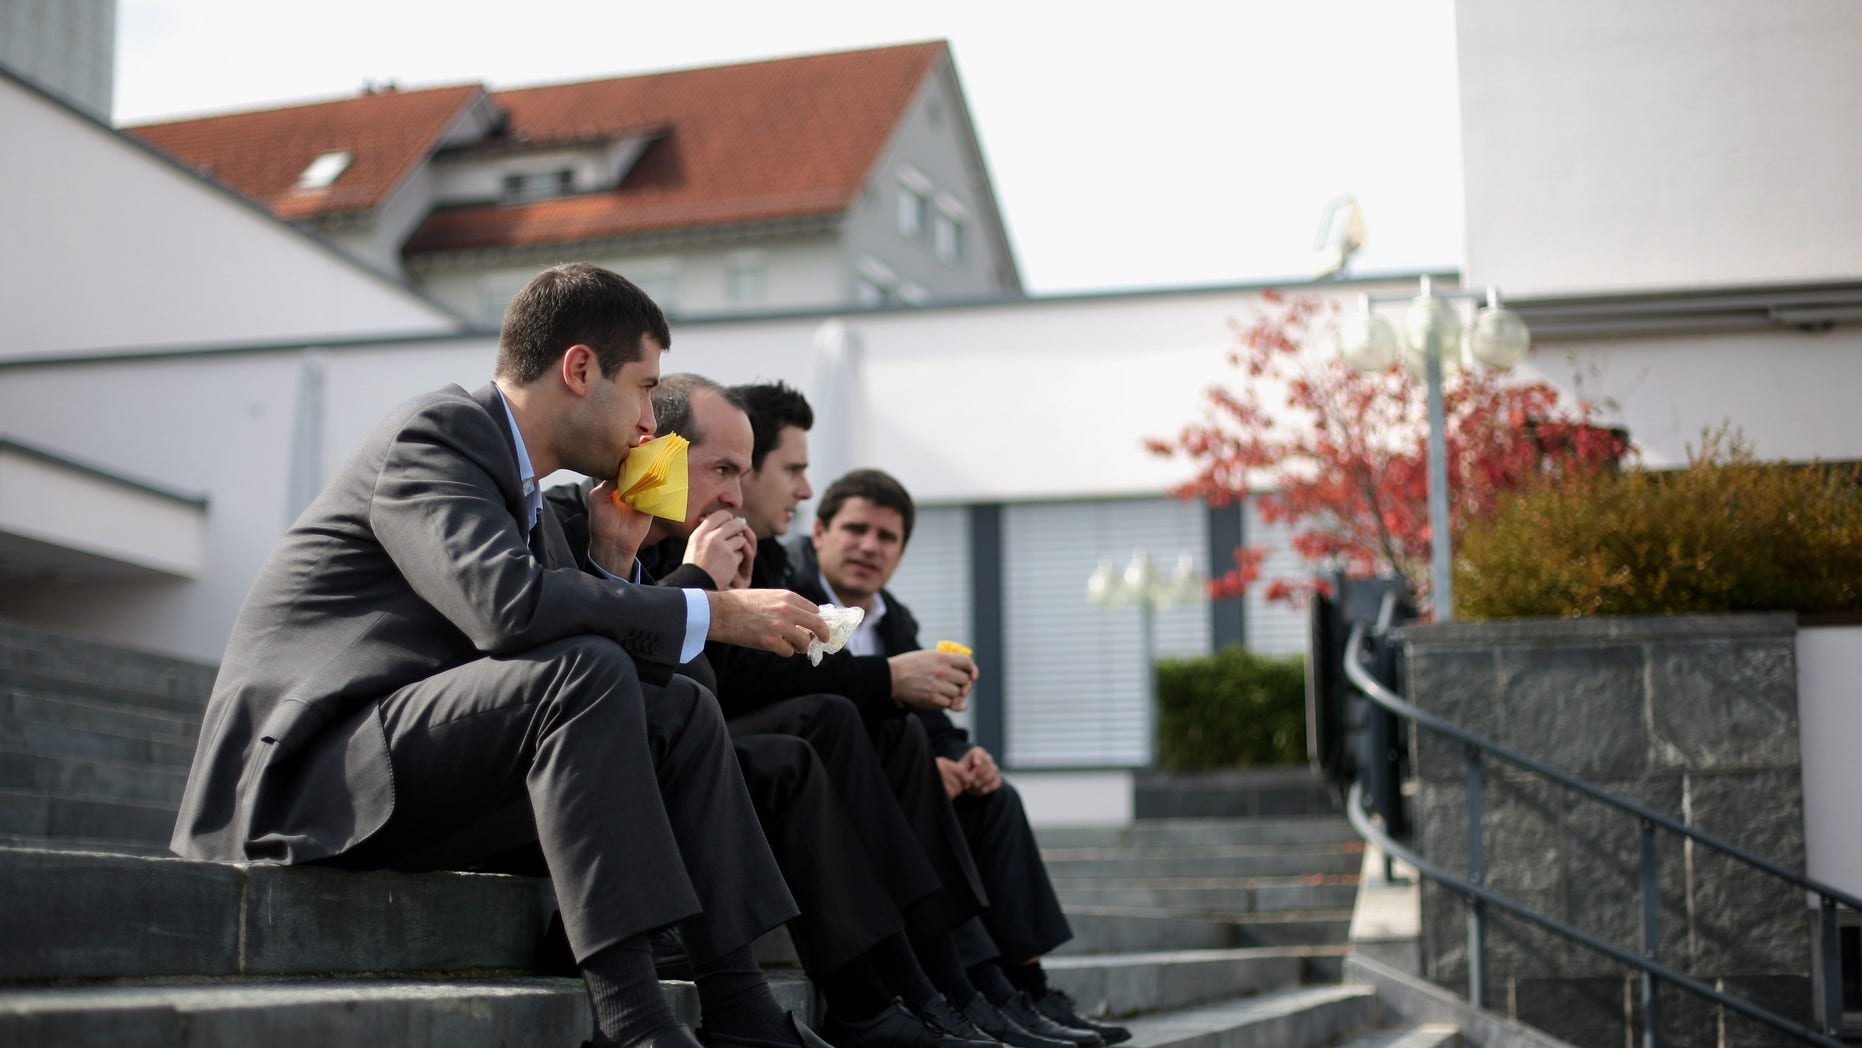 PFAEFFIKON, SWITZERLAND - OCTOBER 06: Four men eat sandwiches during lunch time as they sit on the steps of the village square on October 6, 2009 in Pfaeffikon, Switzerland. Due to lower taxes and less regulation the small Swiss town on the shores of lake Zurich has become a hedge fund hot spot.  (Photo by Miguel Villagran/Getty Images)